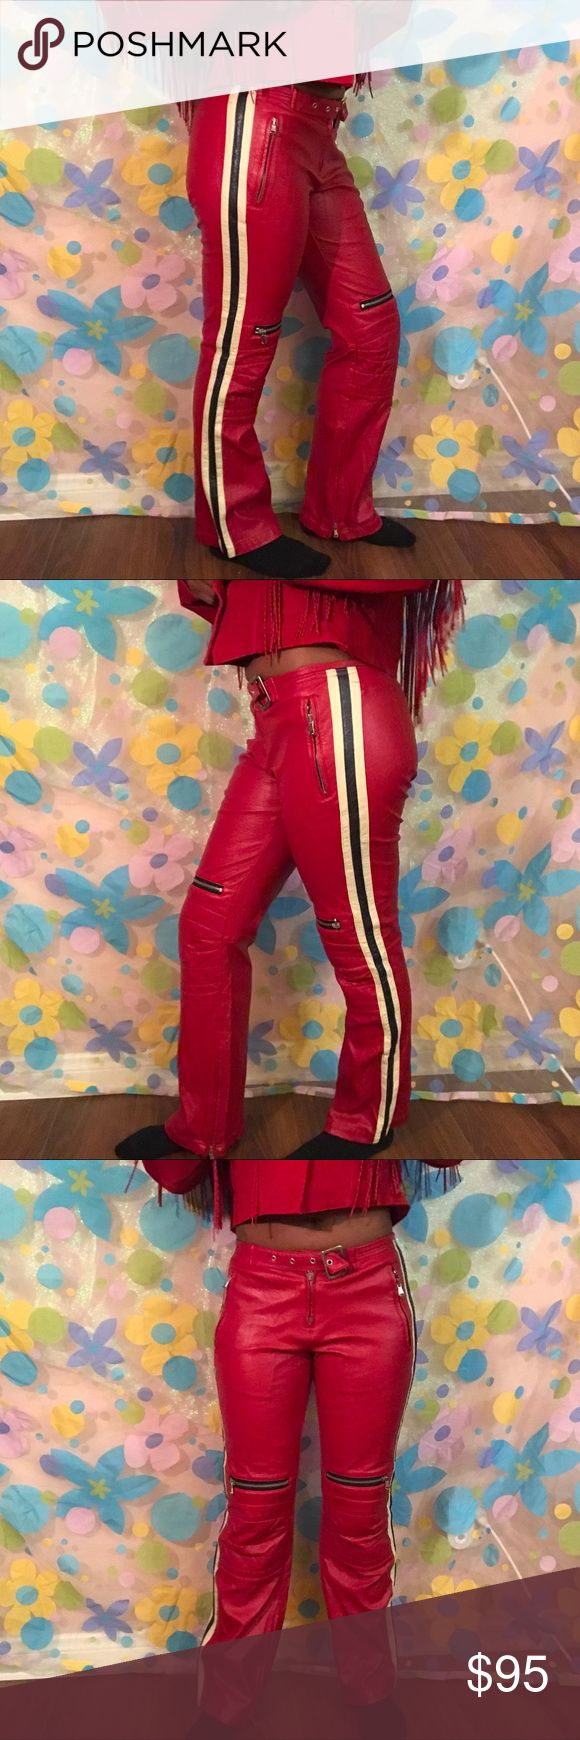 Replay red leather pants size 26 biker motorcycle